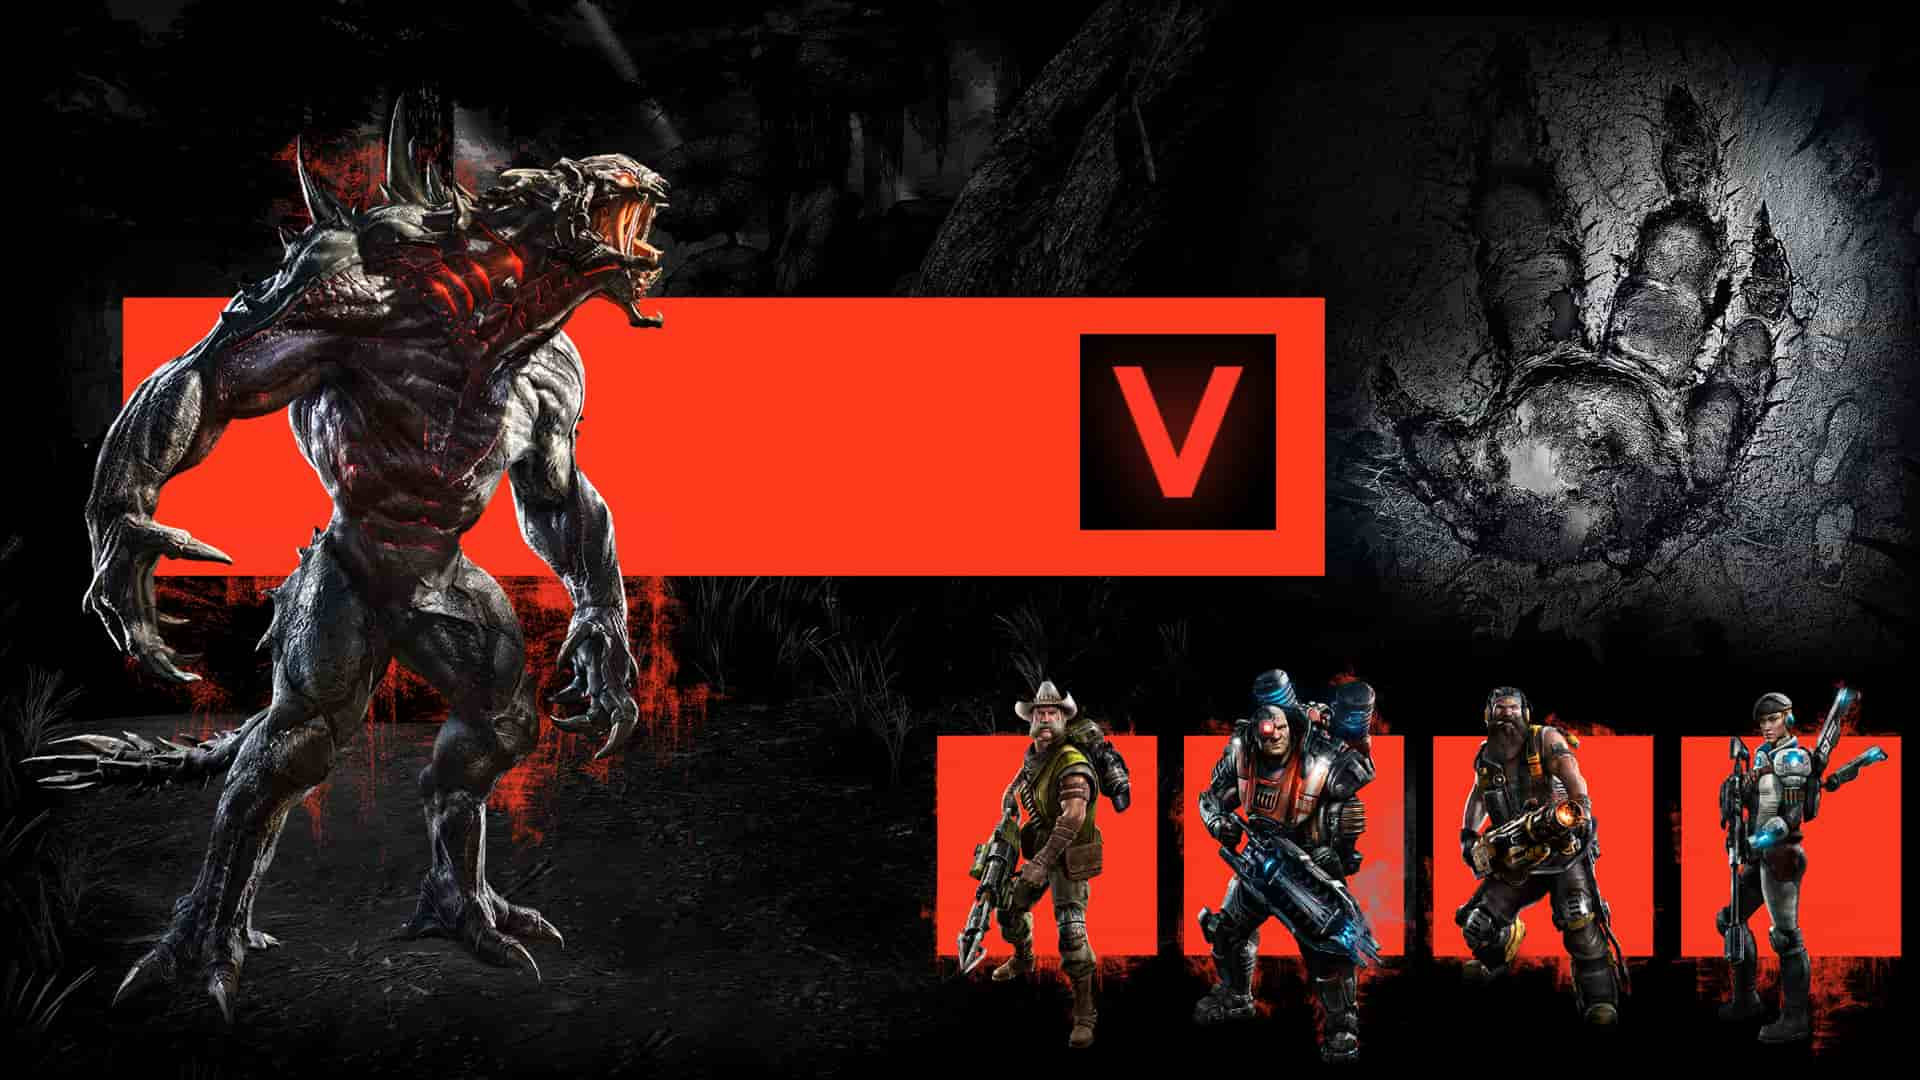 Evolve Dedicated Servers Are Shutting Down, Free-to-Play Version Being Pulled From PC Stores